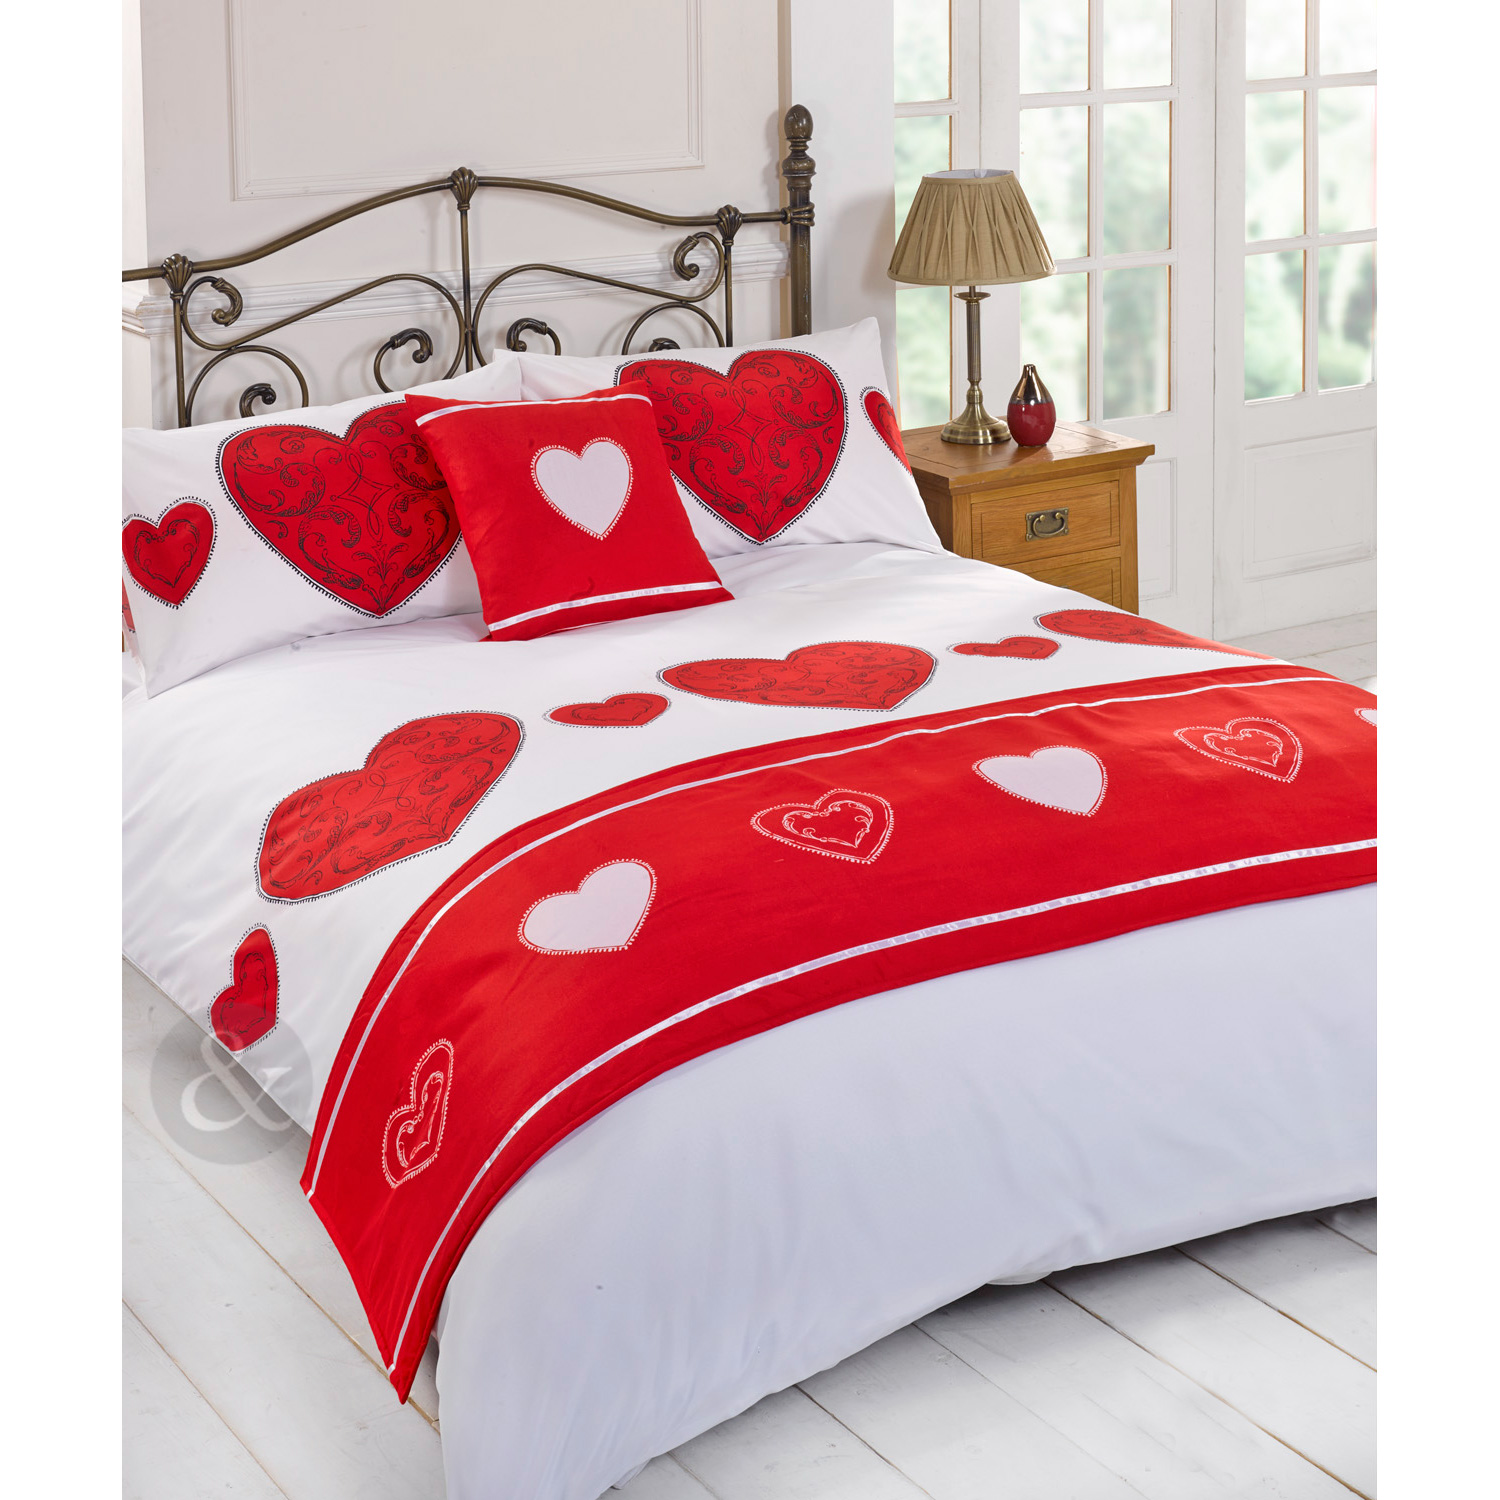 Vintage Love Heart Complete Bed Set Printed Duvet Cover